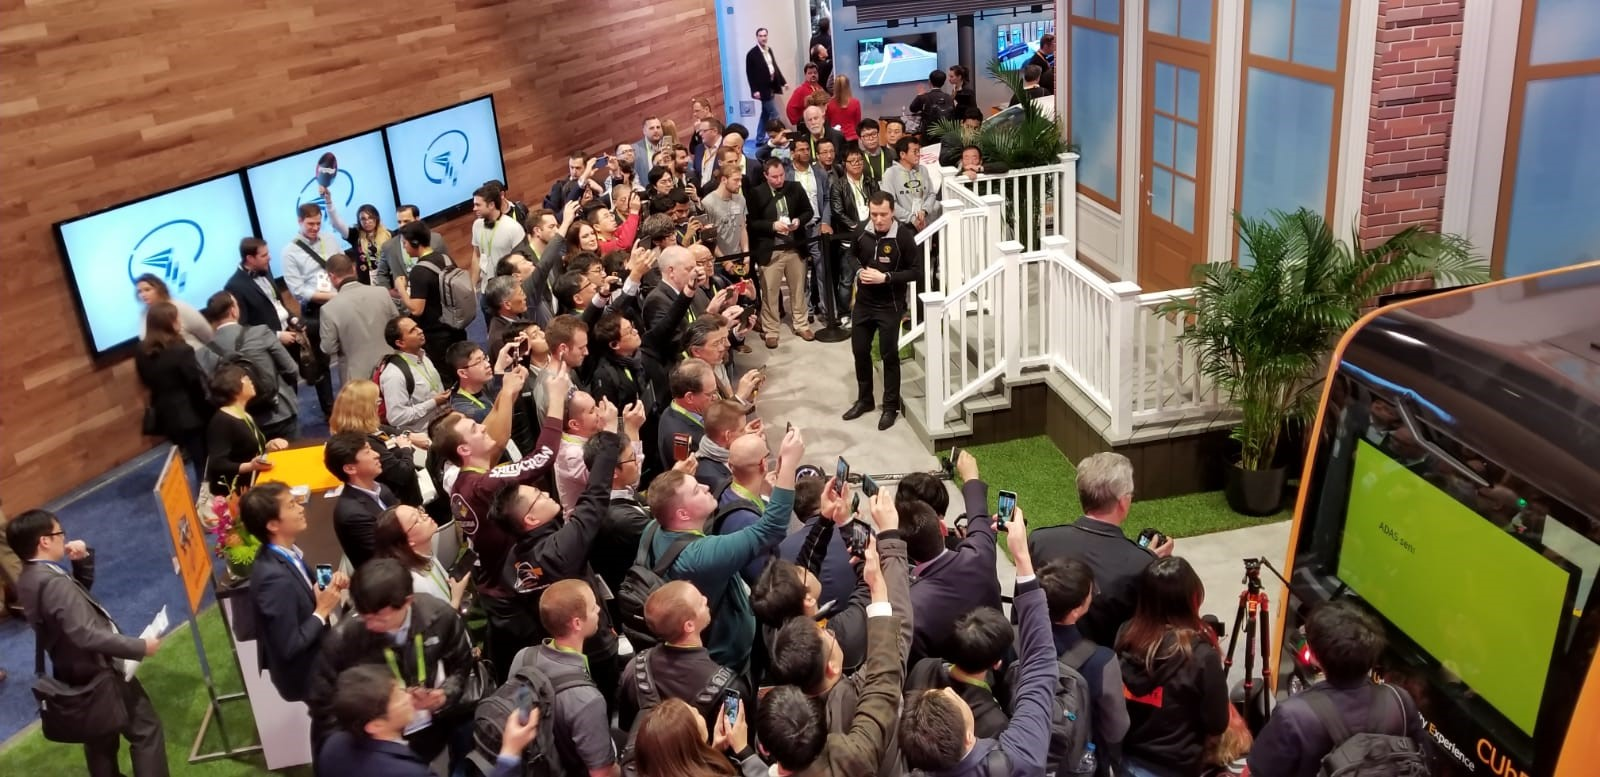 CES 2019 organizers were expecting over 180,000 visitors for this year's edition.